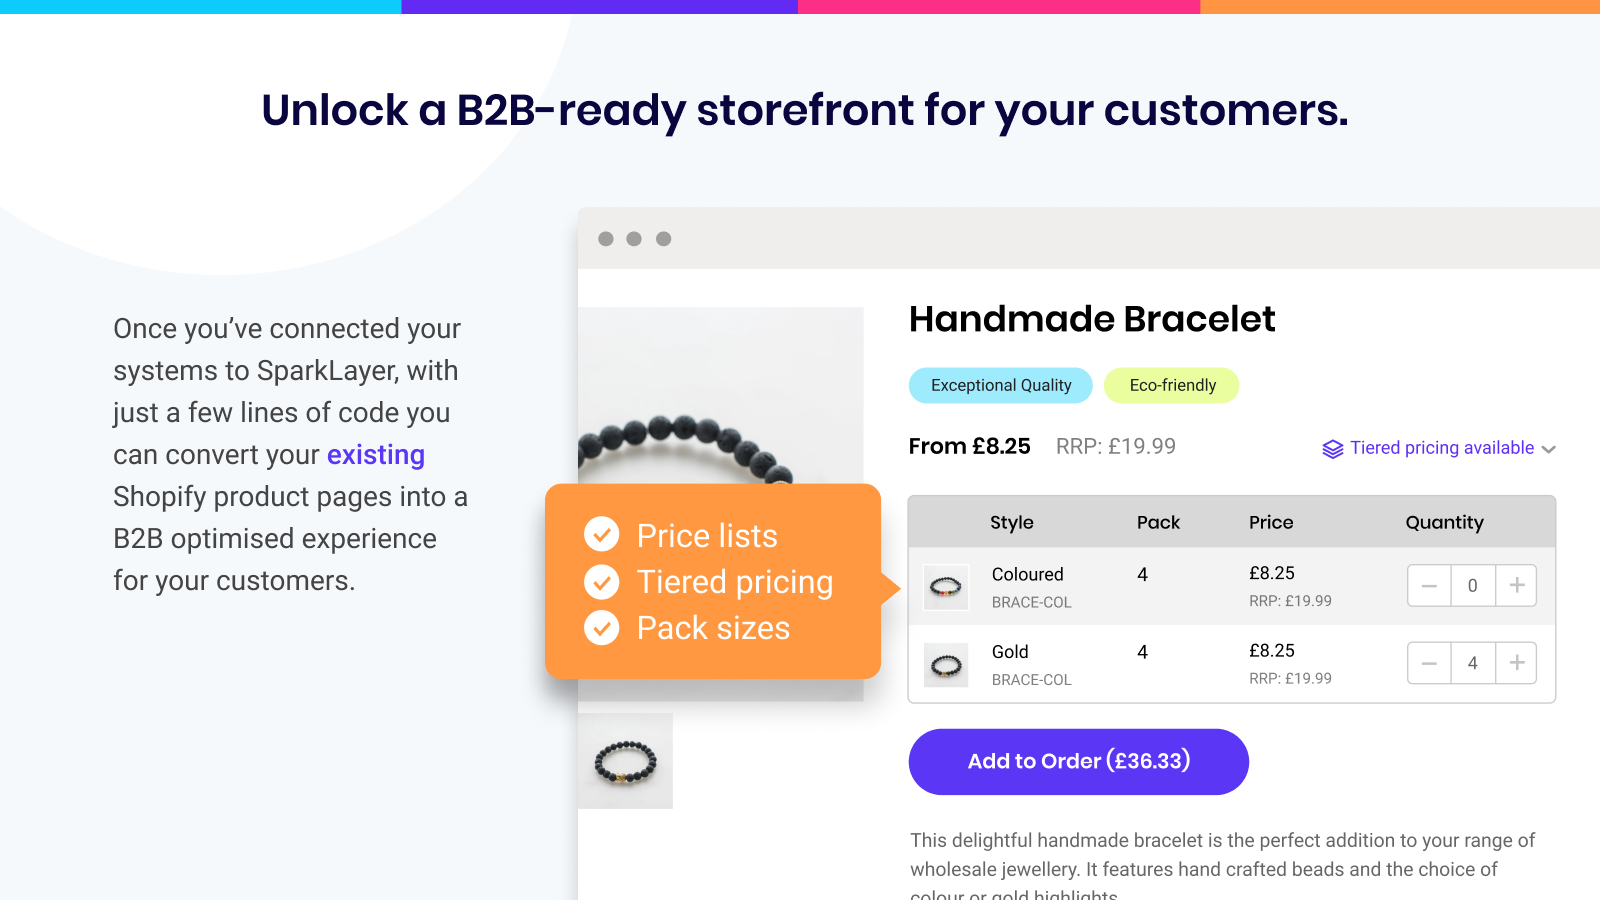 Unlock a B2B-ready storefront for your customers